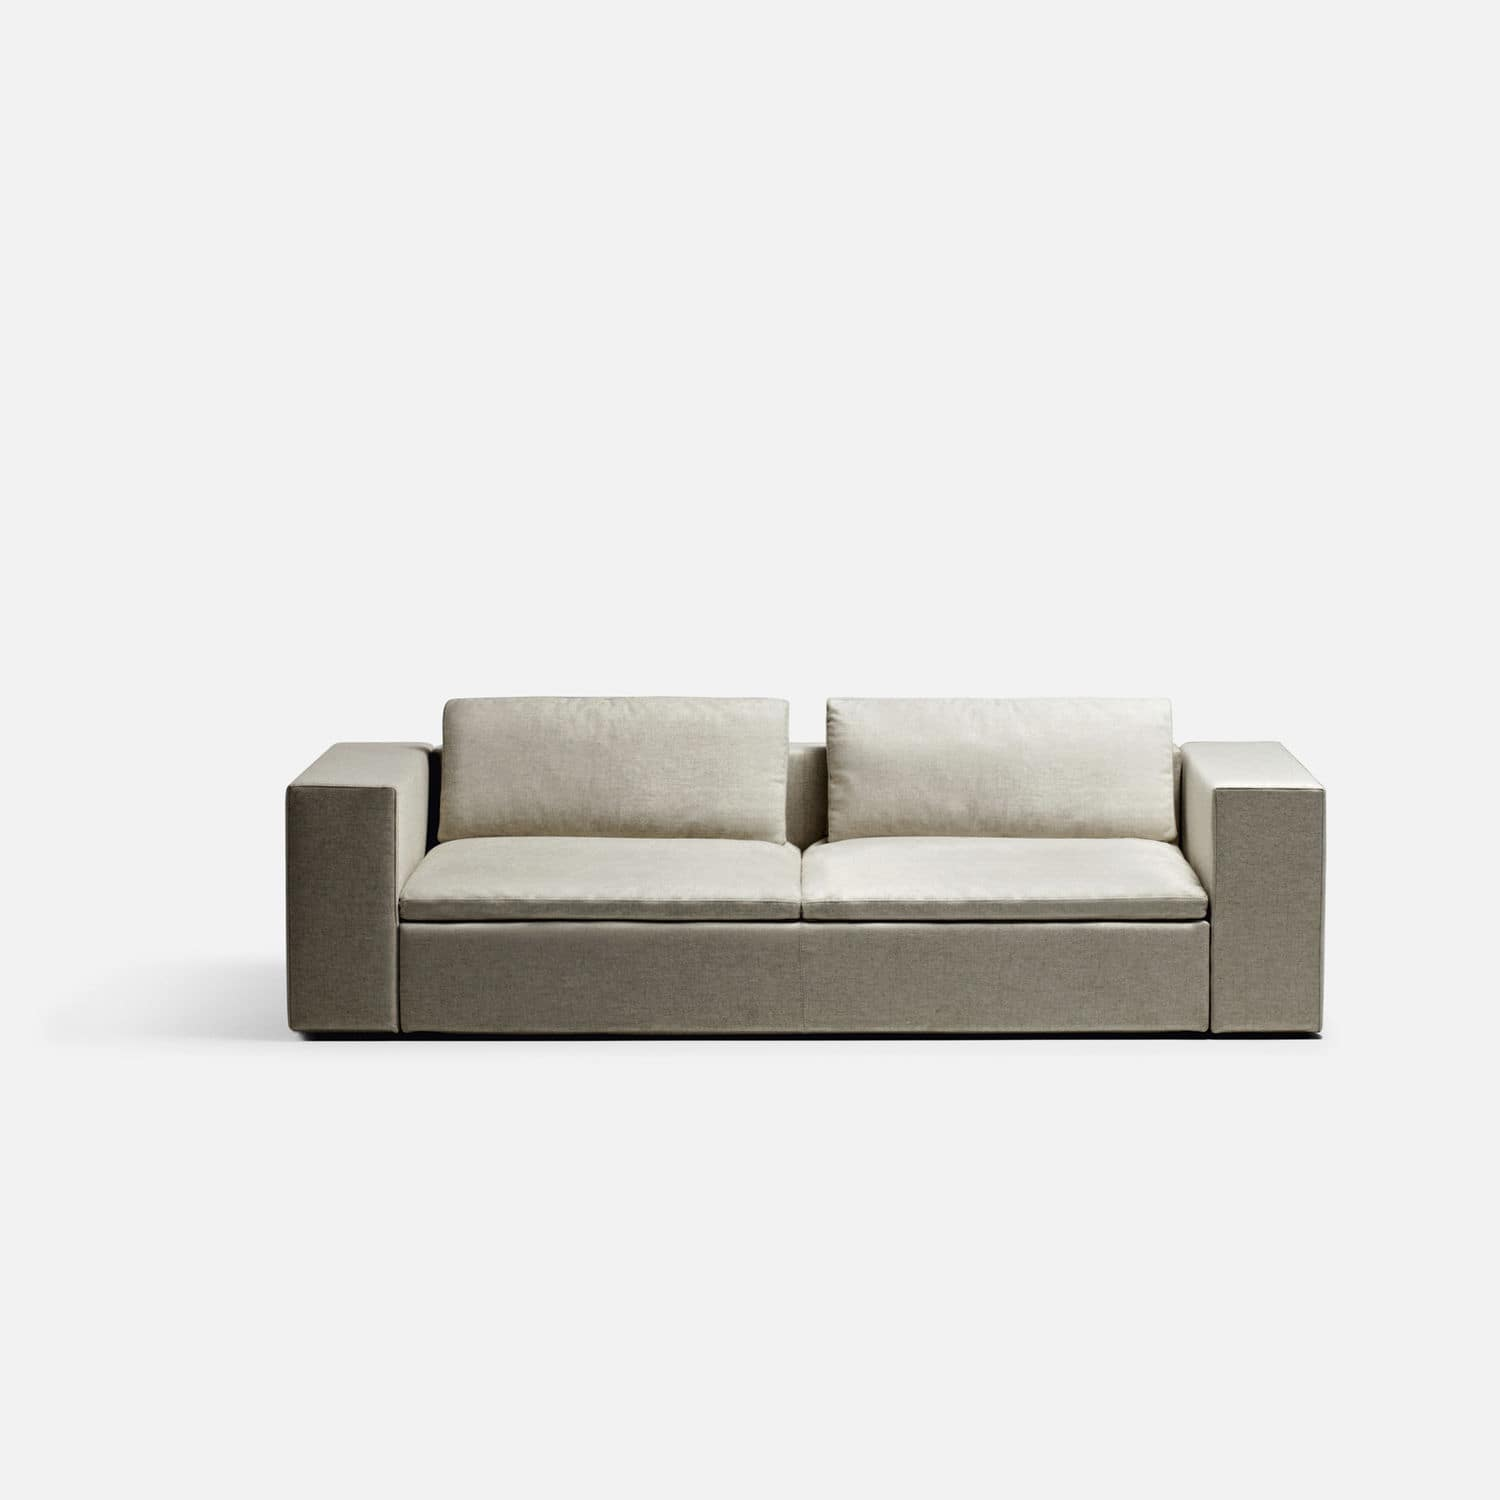 Puzzle Sofa Modular Sofa Corner Contemporary Leather Puzzle By Lc Made